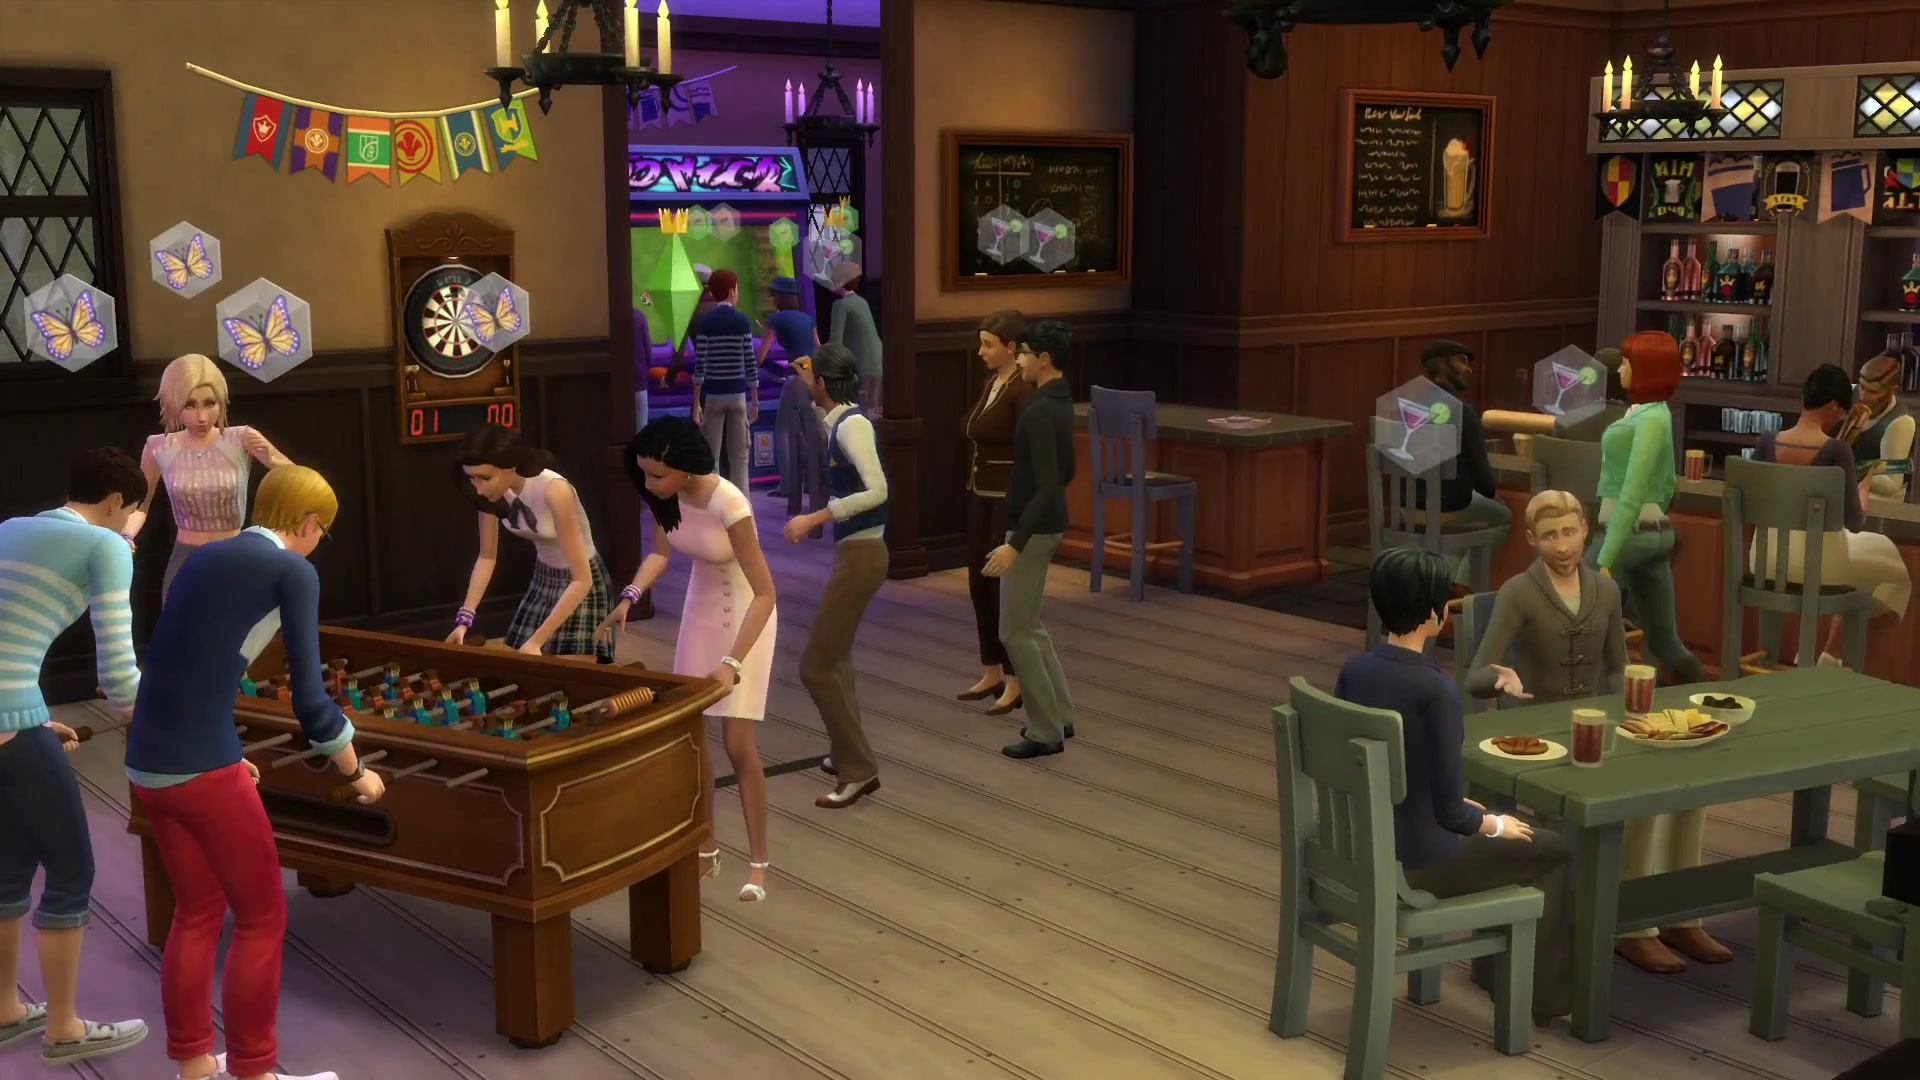 Reviewed: The Sims4: City Living